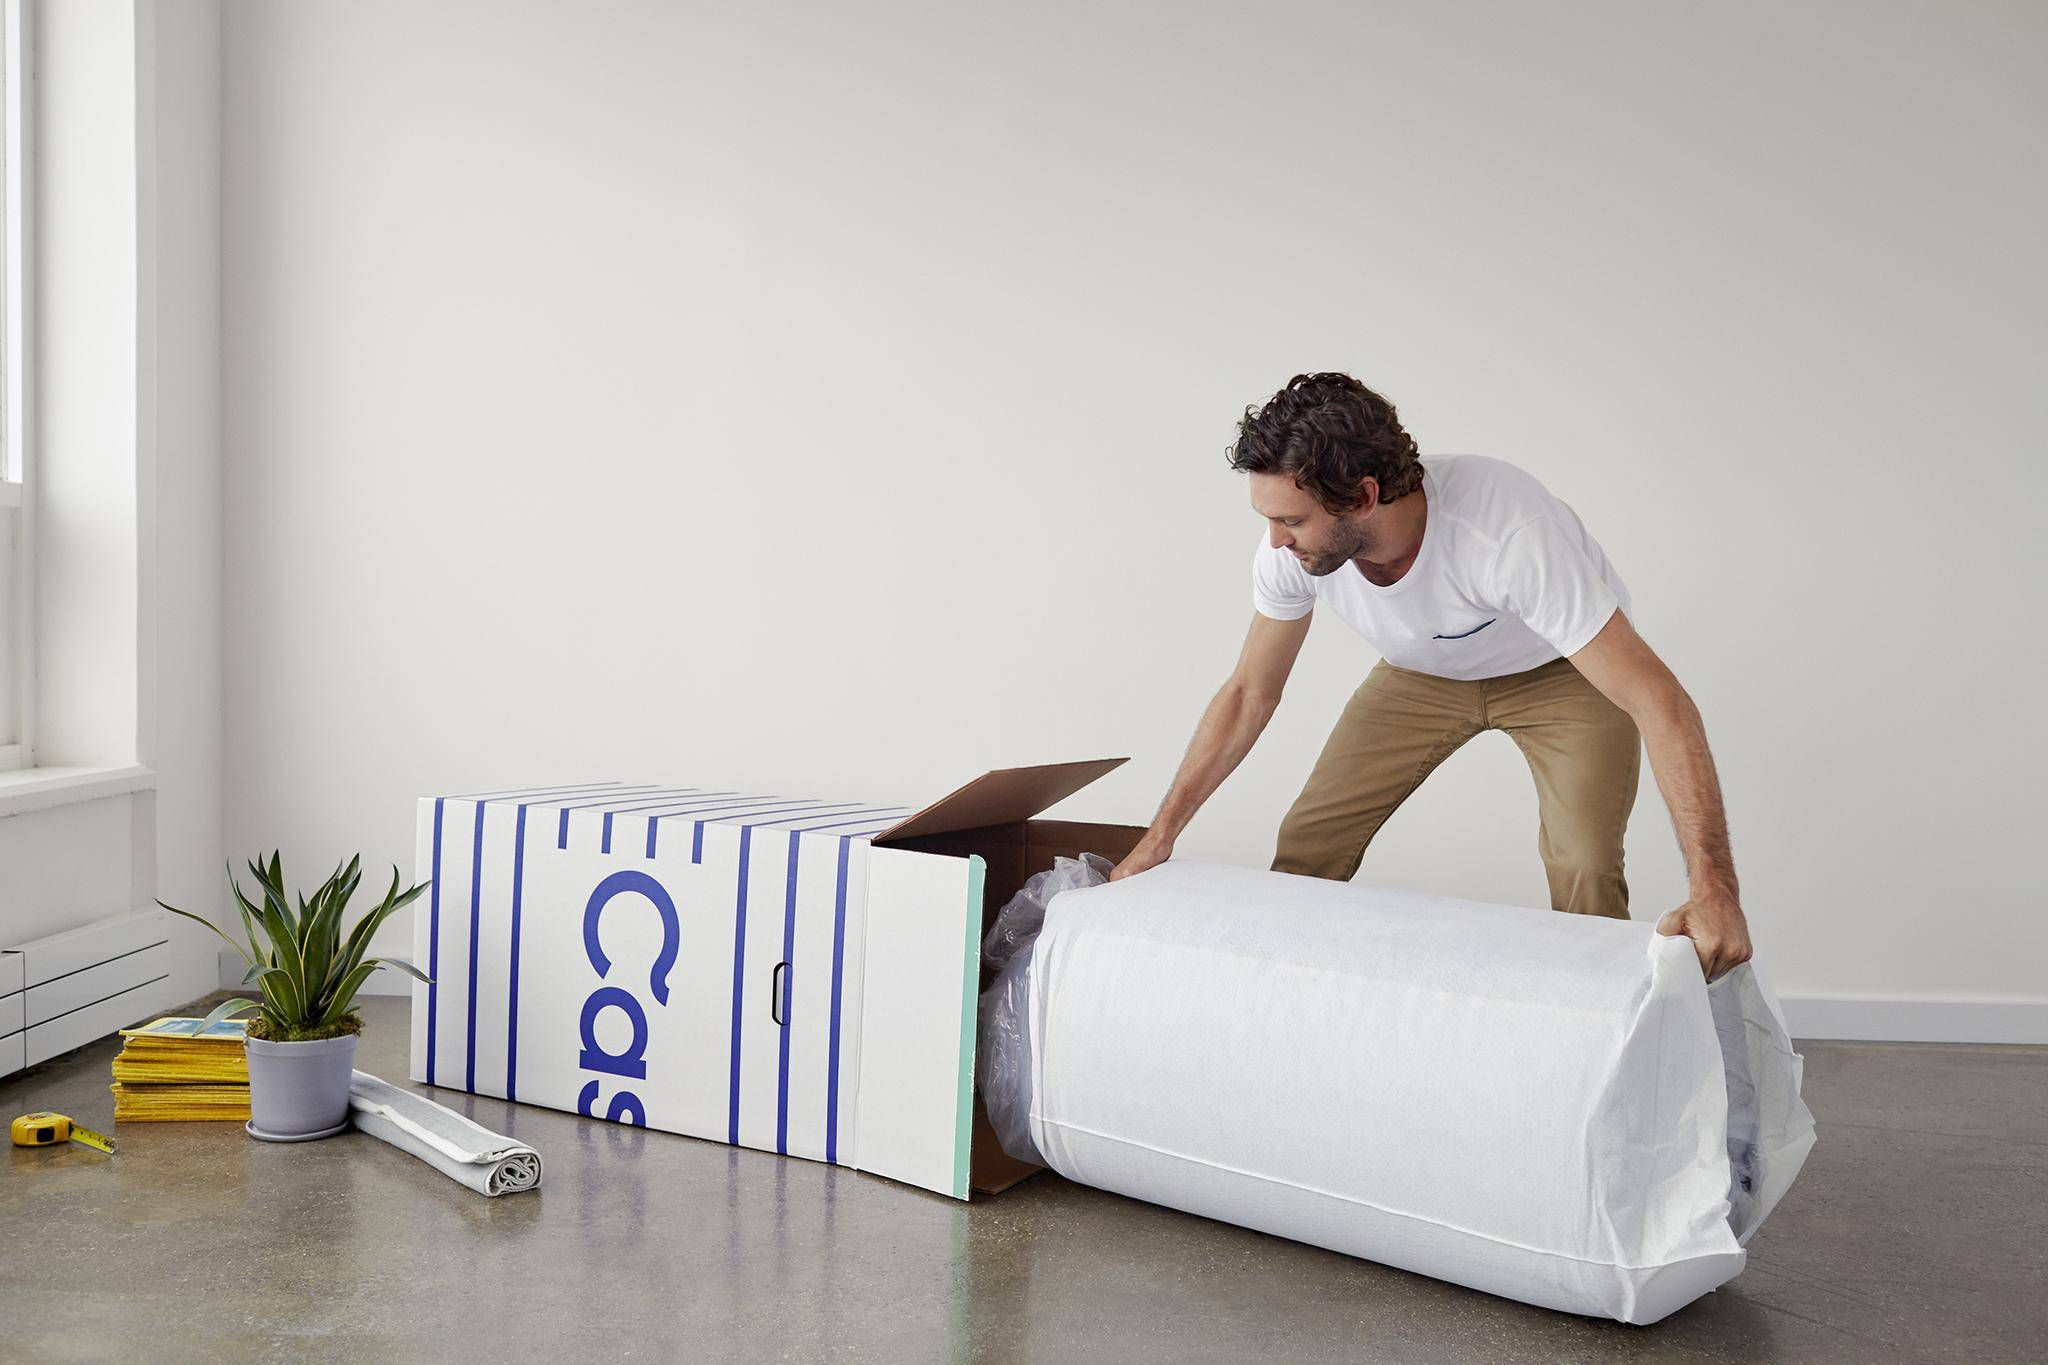 How The Hipster Mattress Is Changing The Way We Buy Beds The